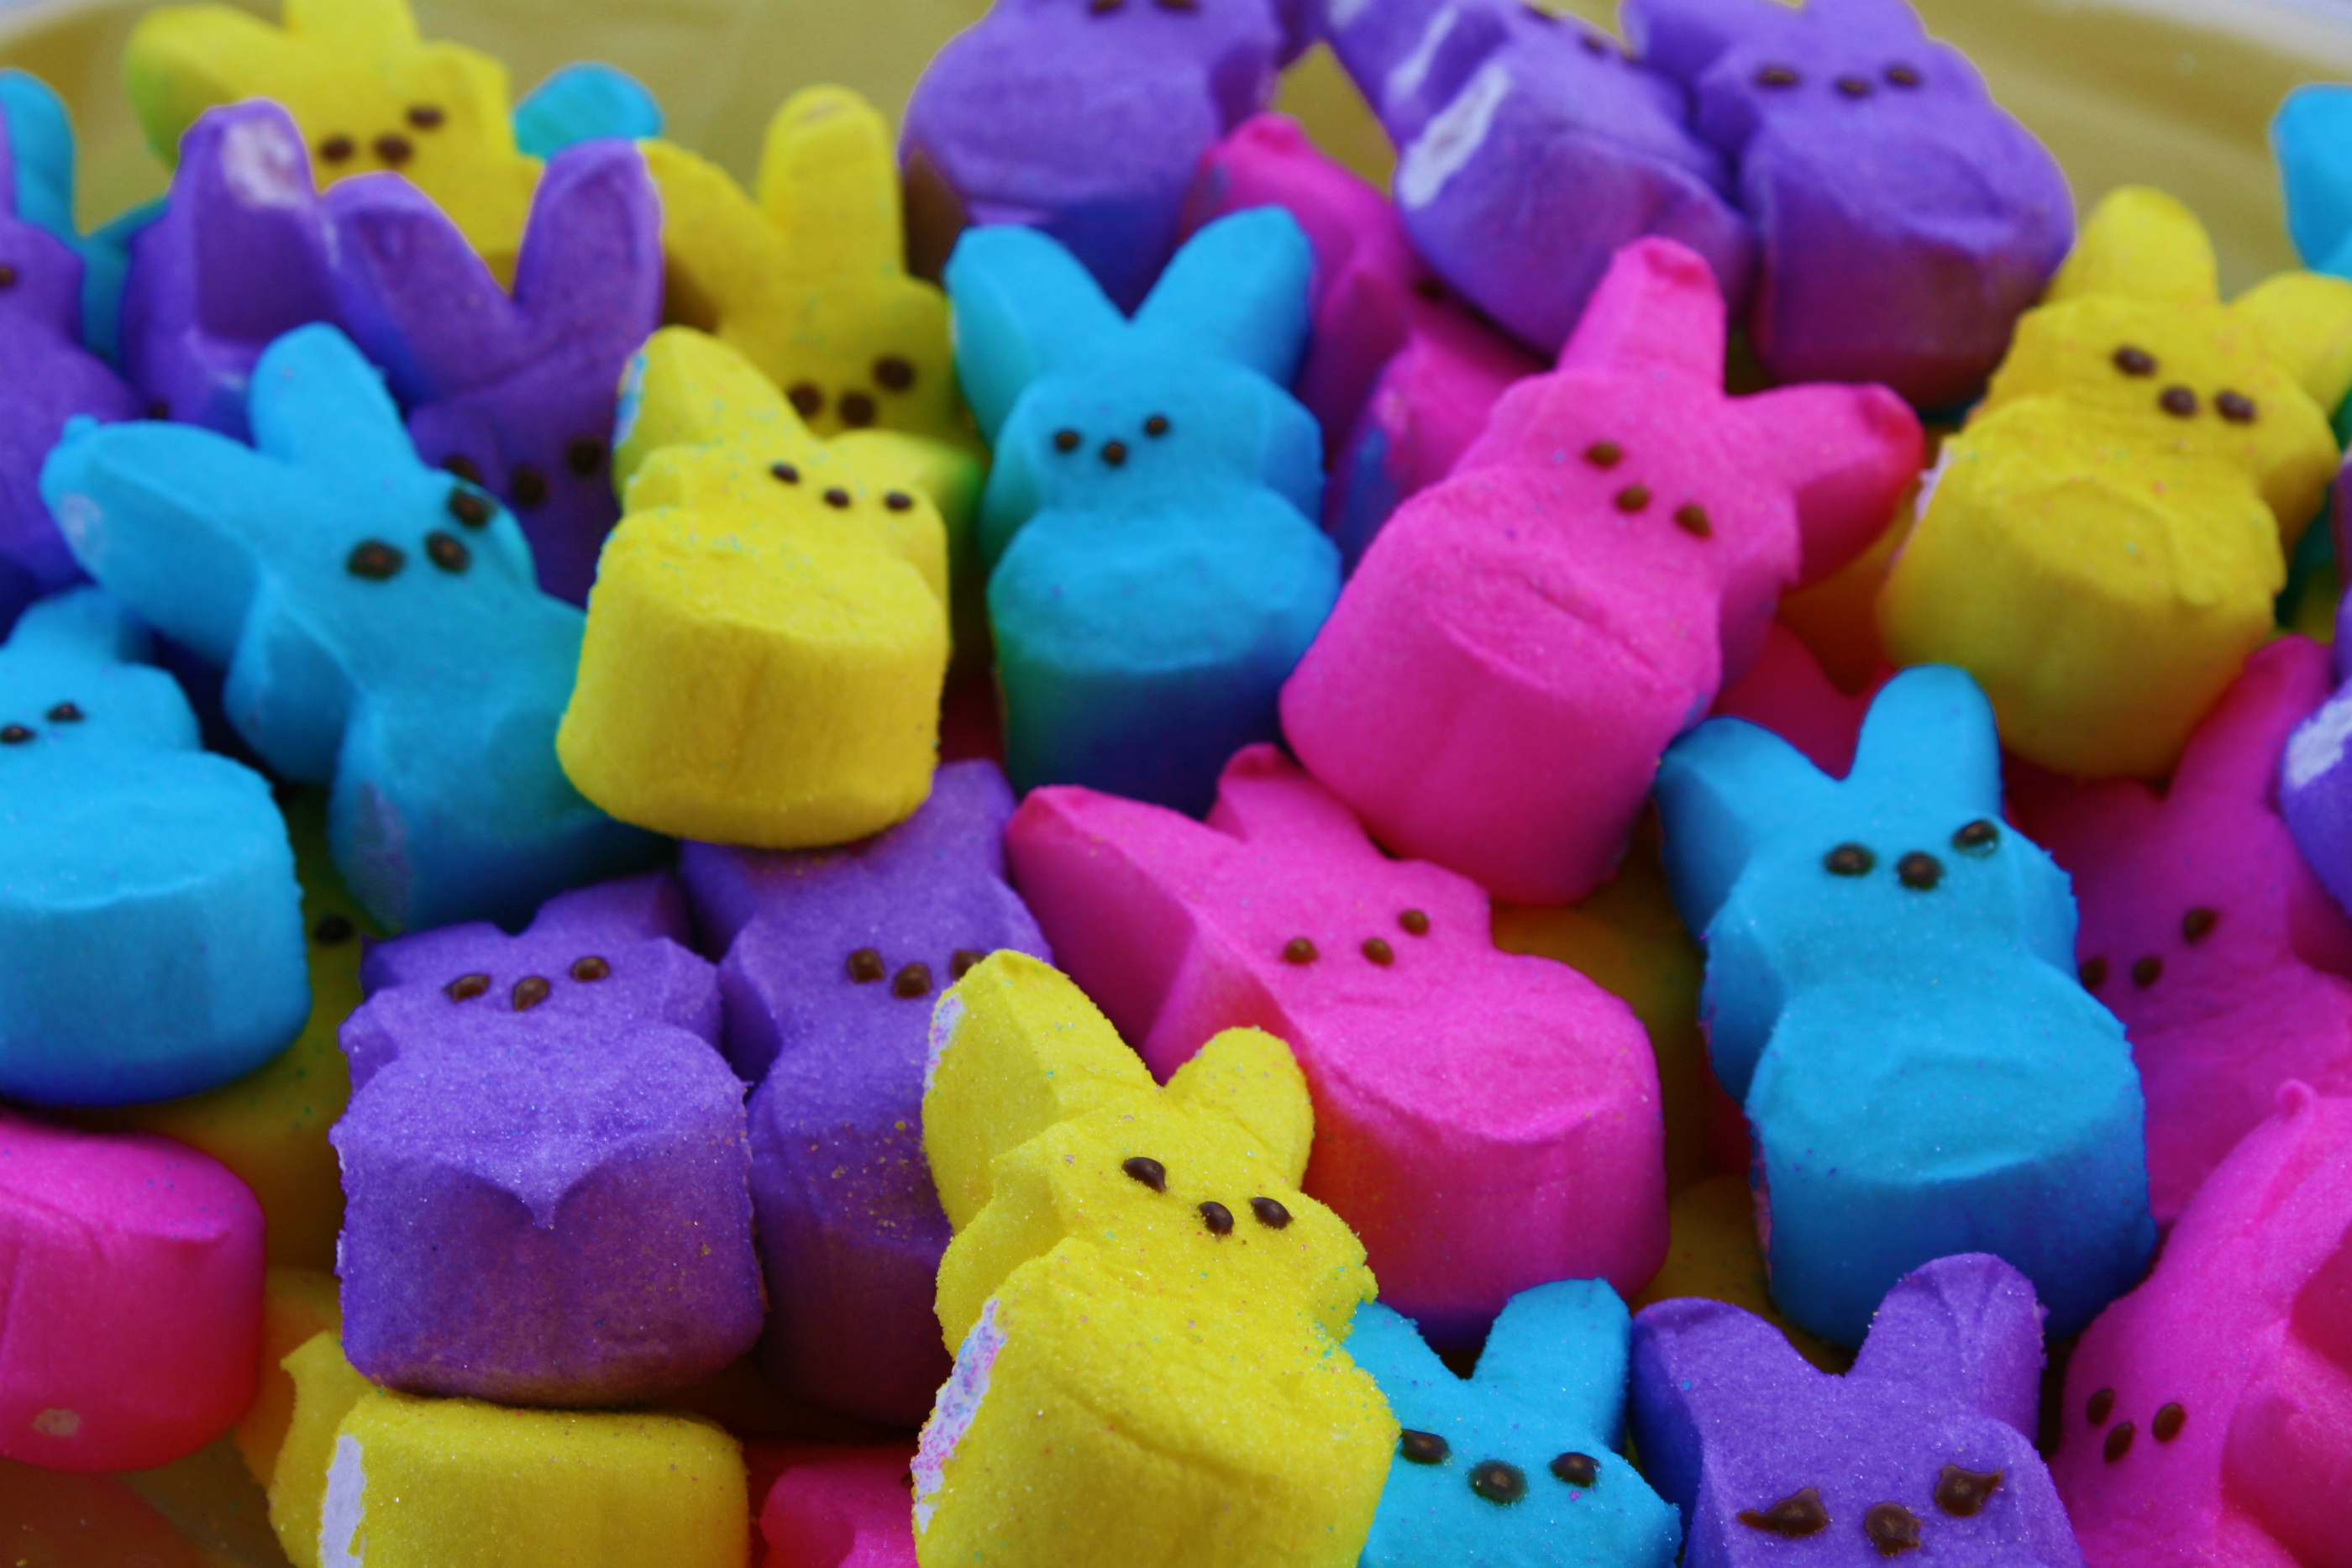 peeps easter candy desktop wallpaper - photo #34